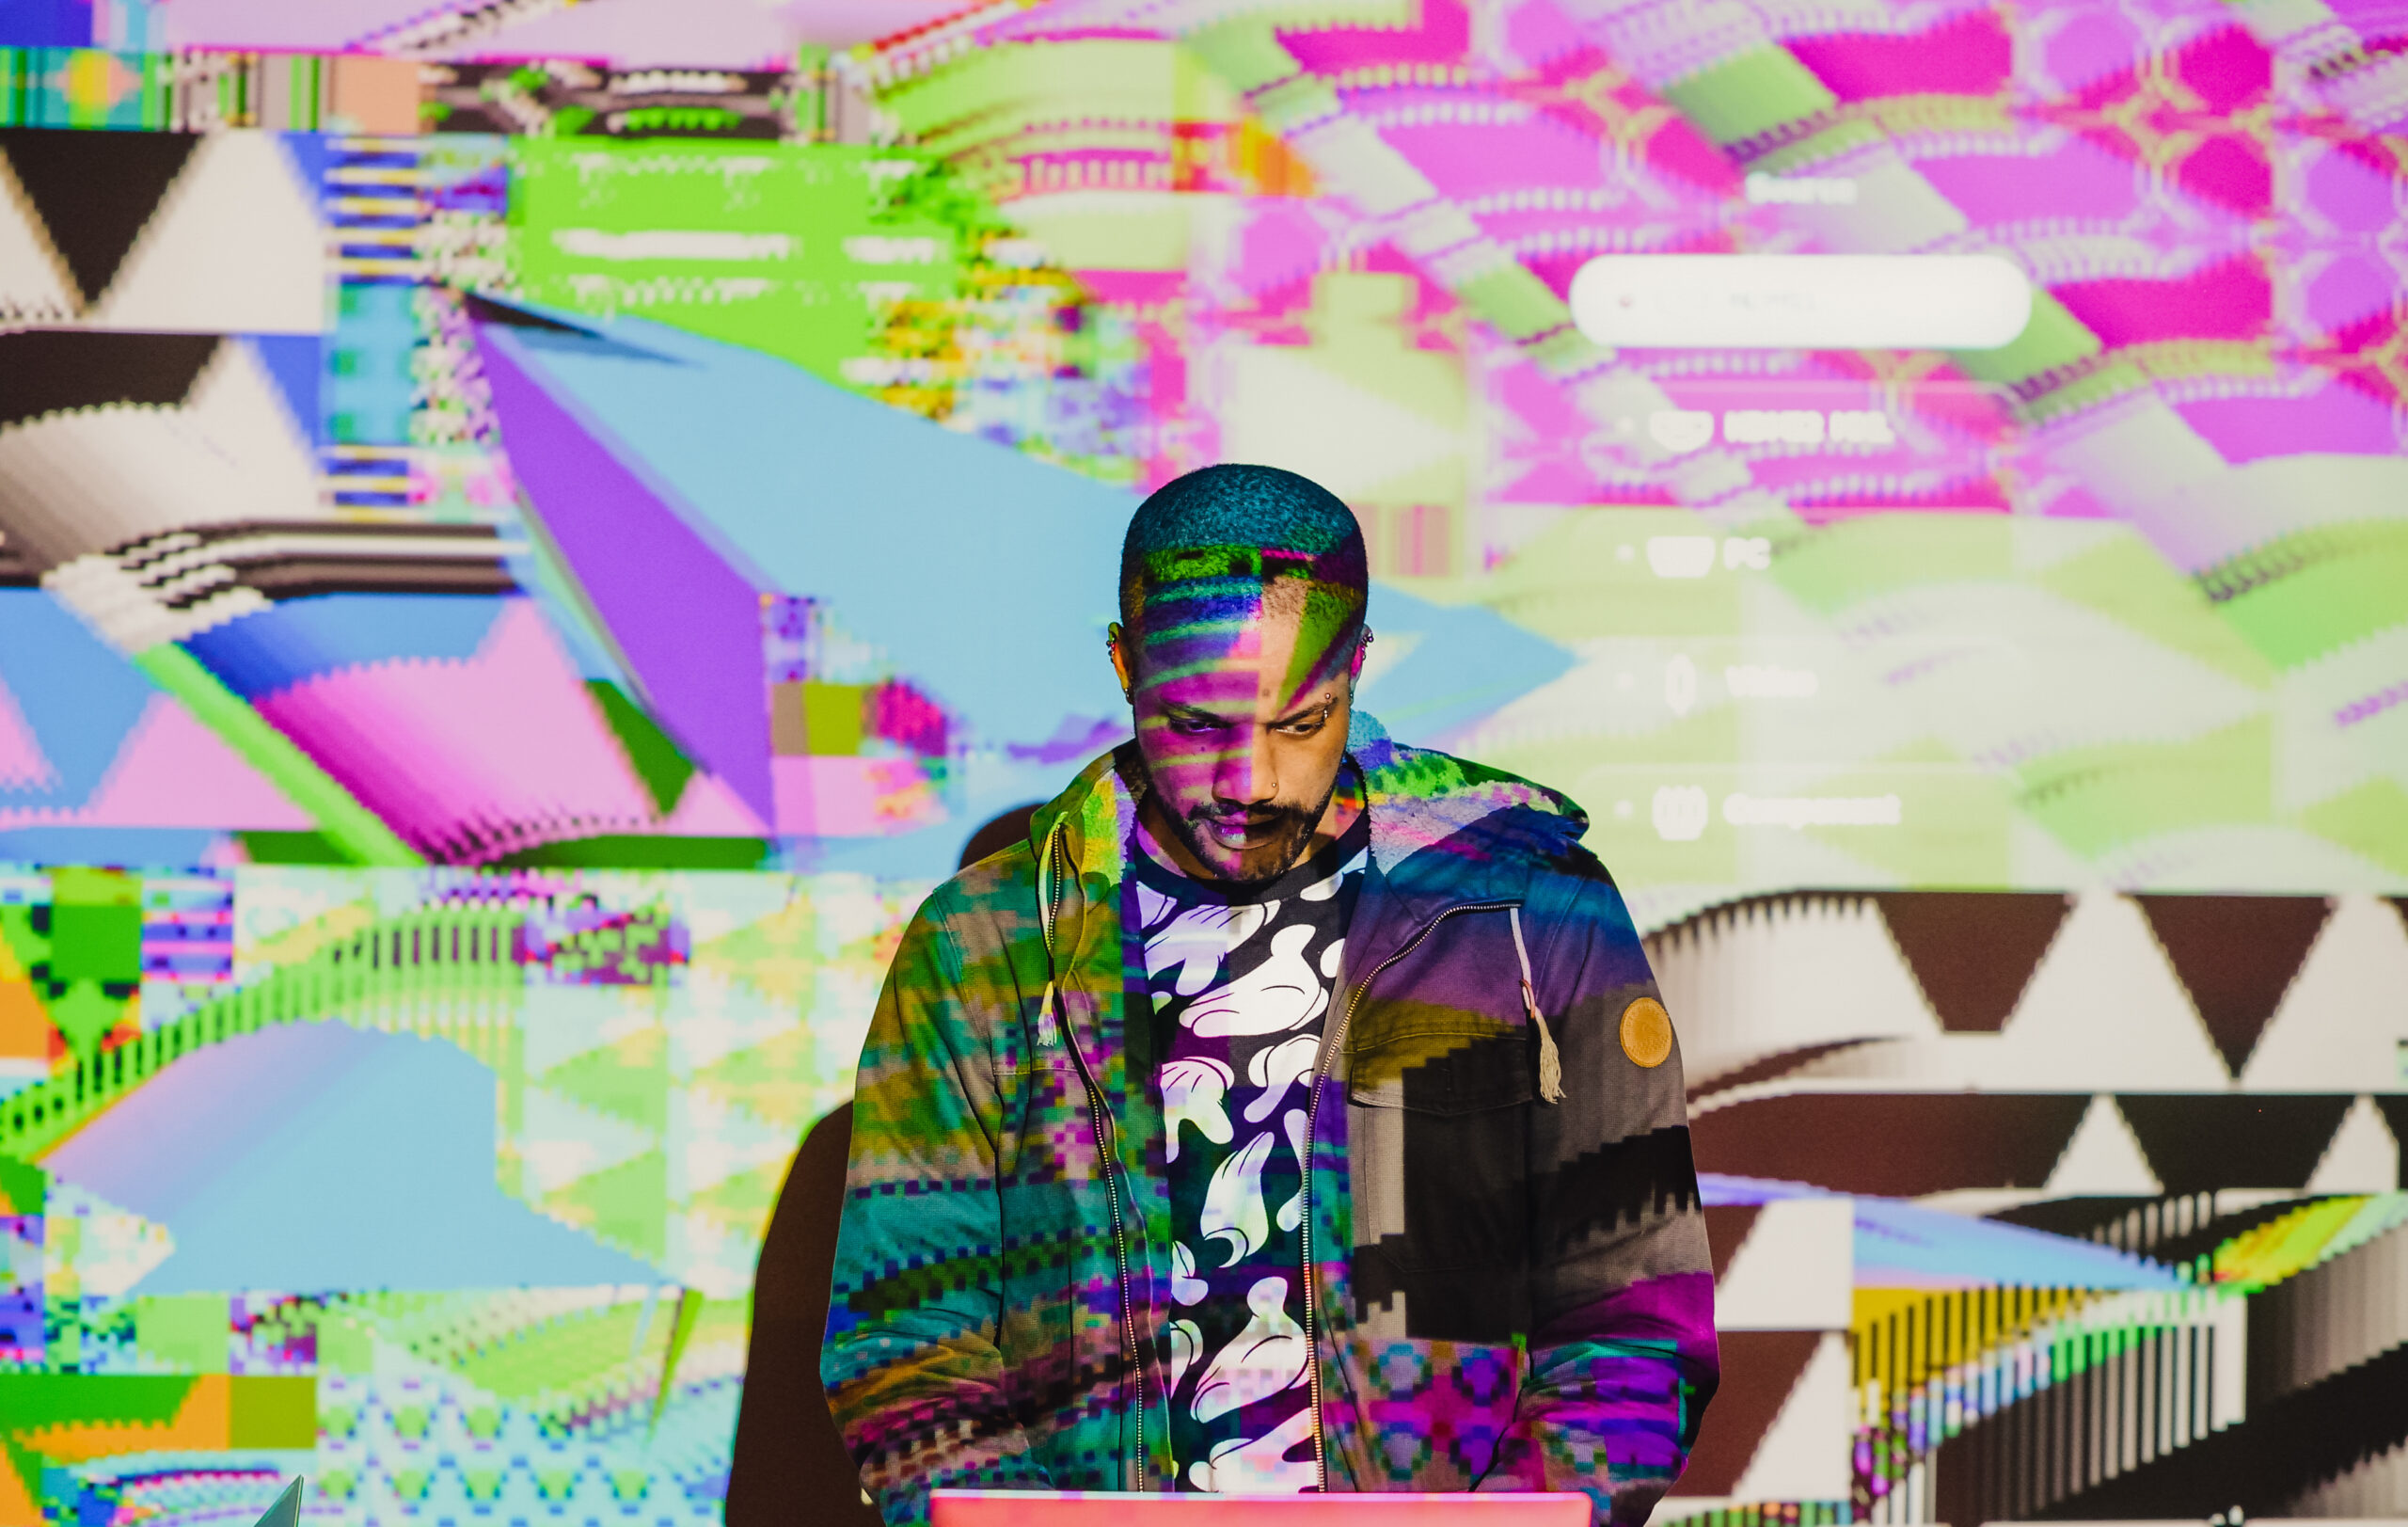 Artist Antonio Roberts, creator of Move Fast and Brake Things, looking at a laptop with projections across his body